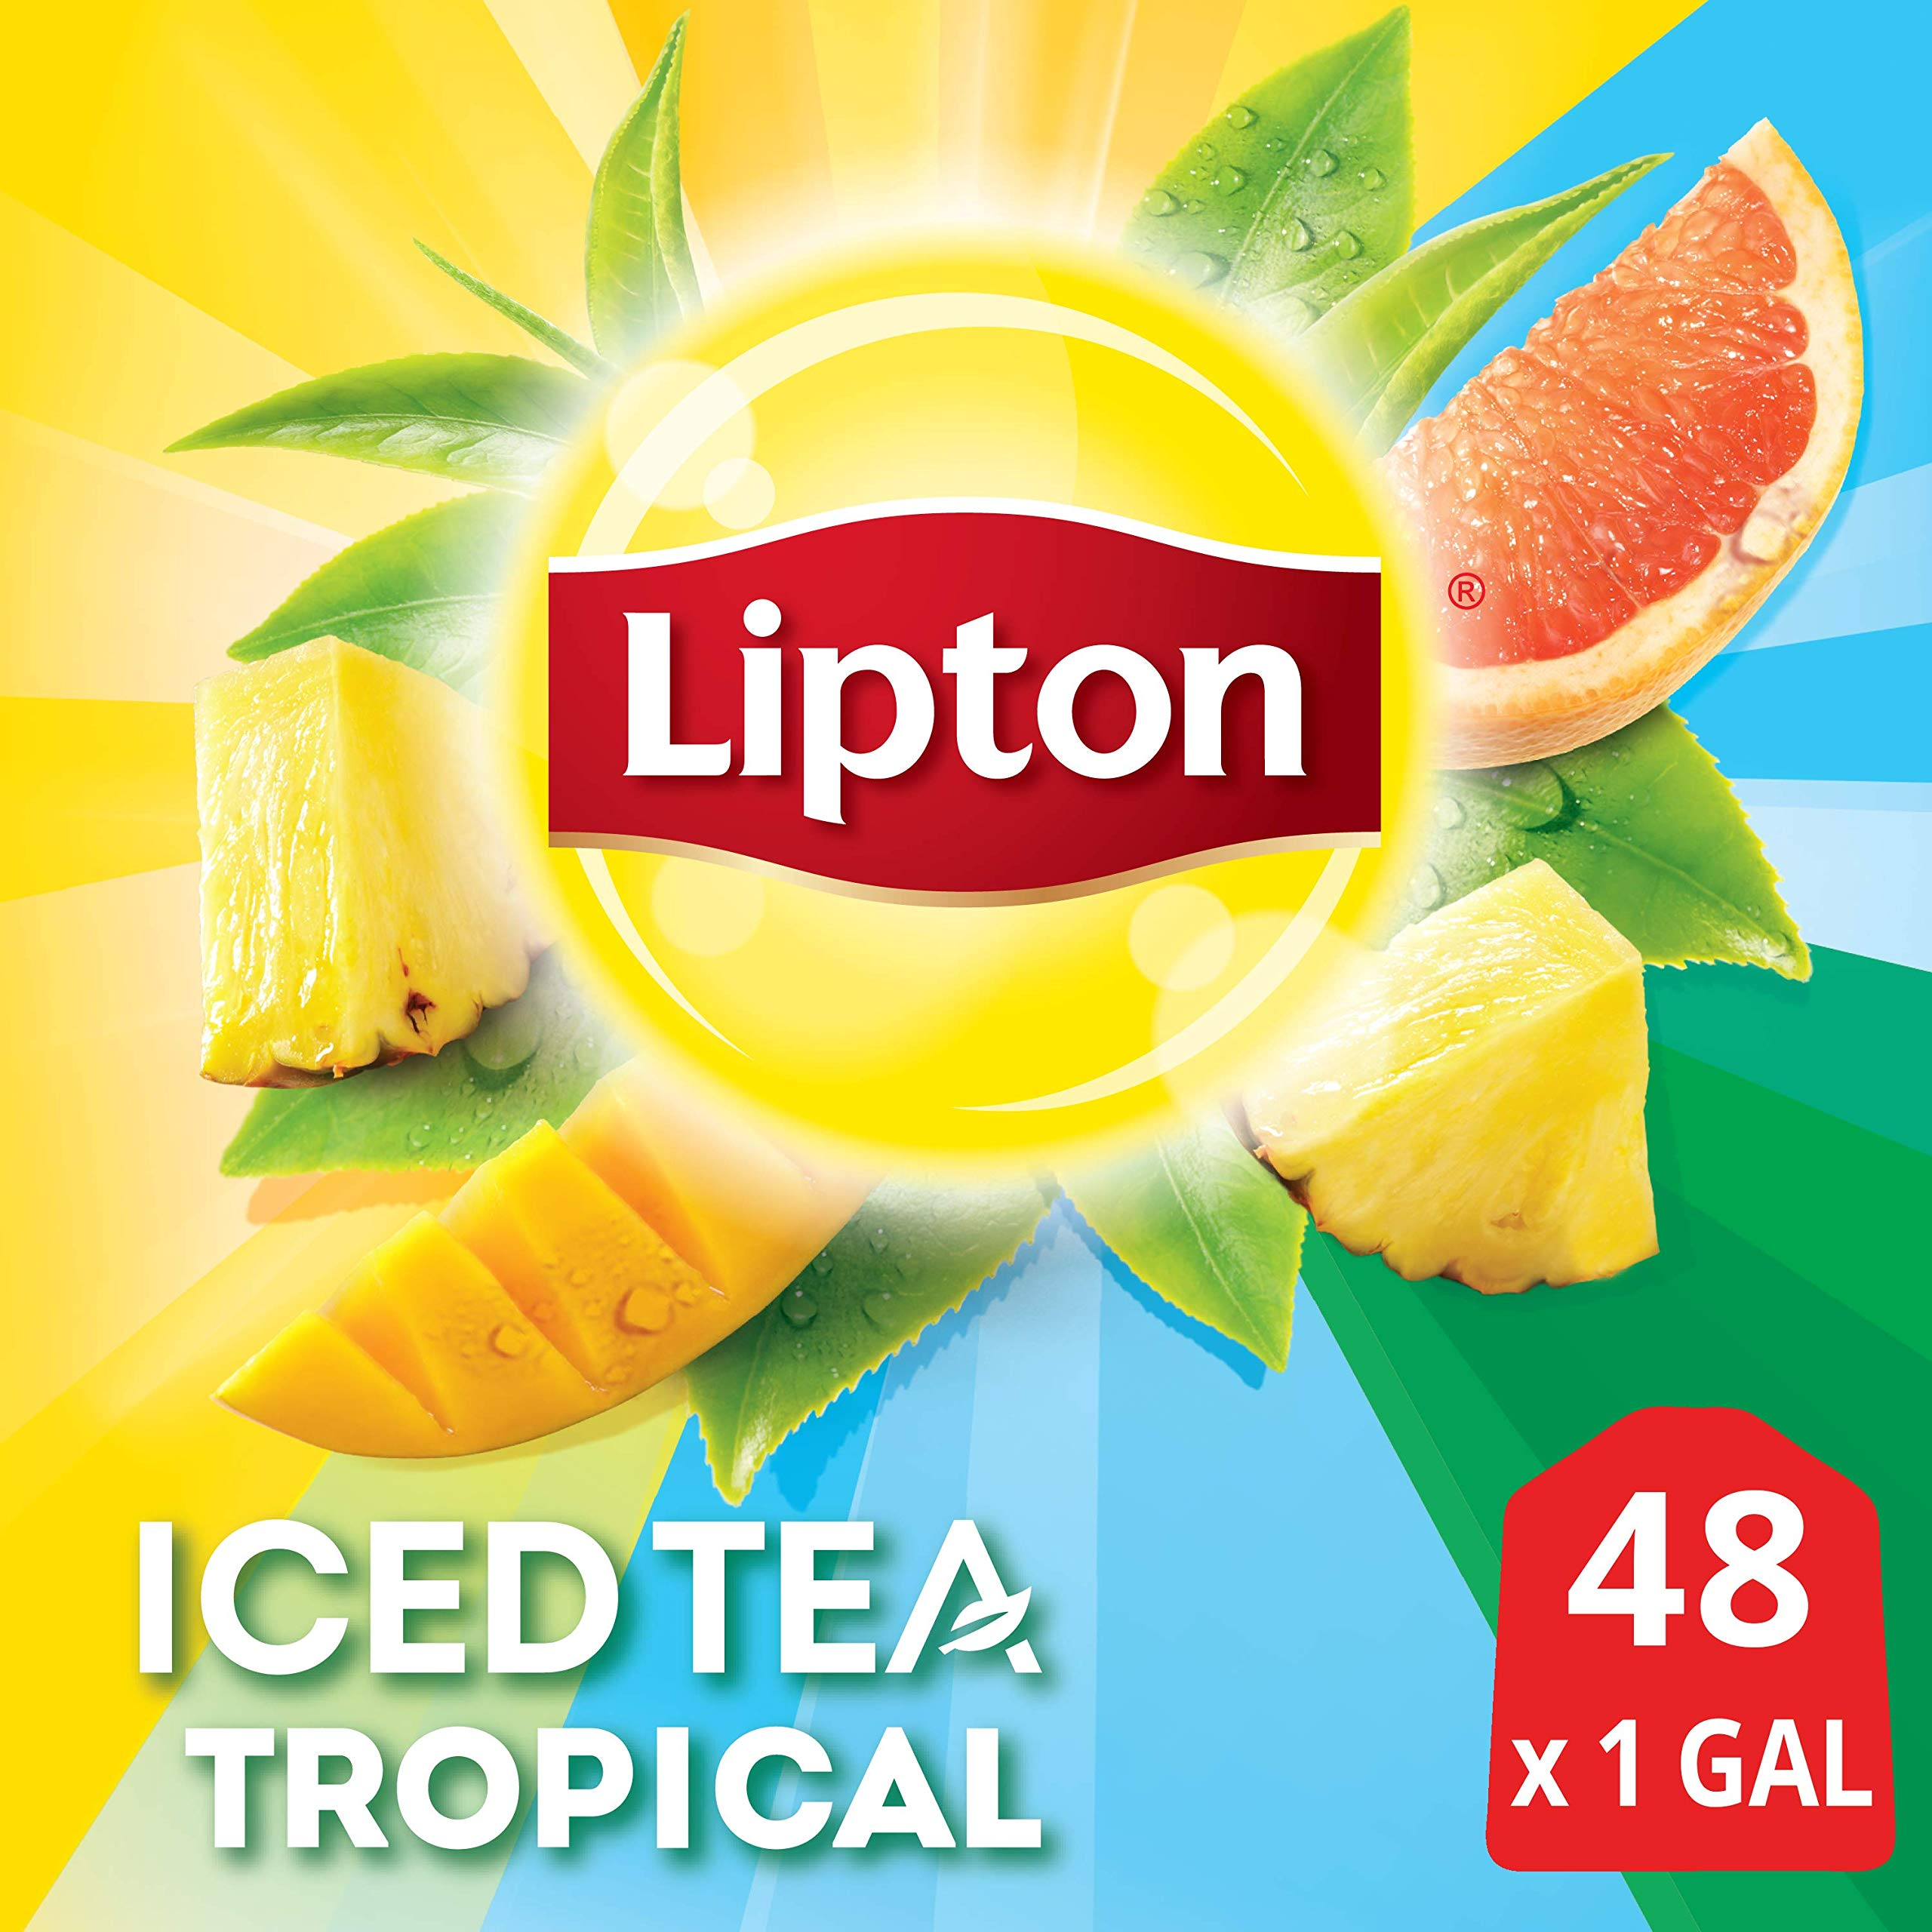 Lipton Iced Tea Bags Black Tropical Unsweetened 1 gallon, 2x Pack of 24